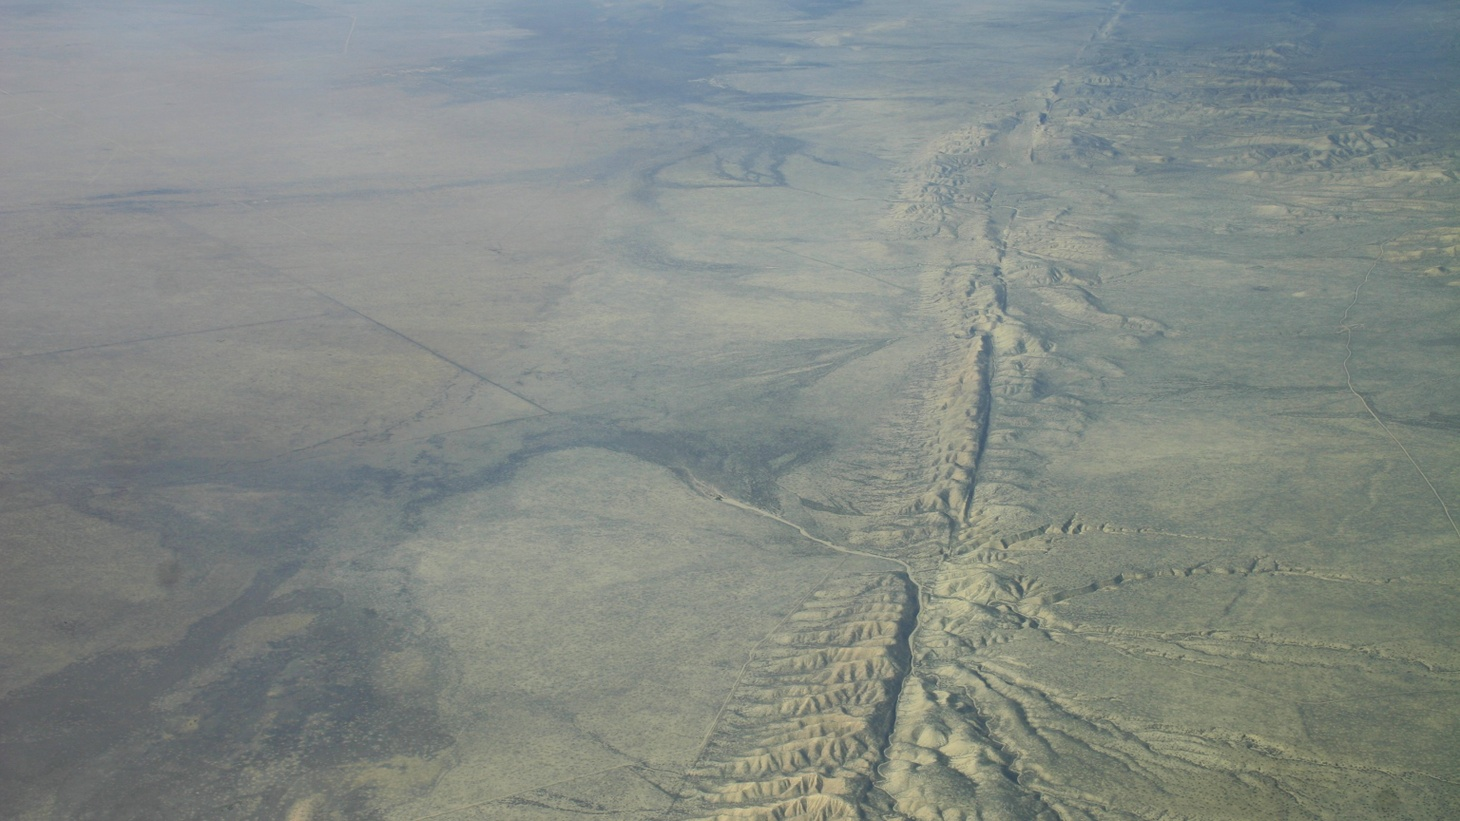 San Andreas Fault in the Carrizo Plain, aerial view from 8500 feet altitude. Photo by  Ikluft/ Wikimedia Commons.